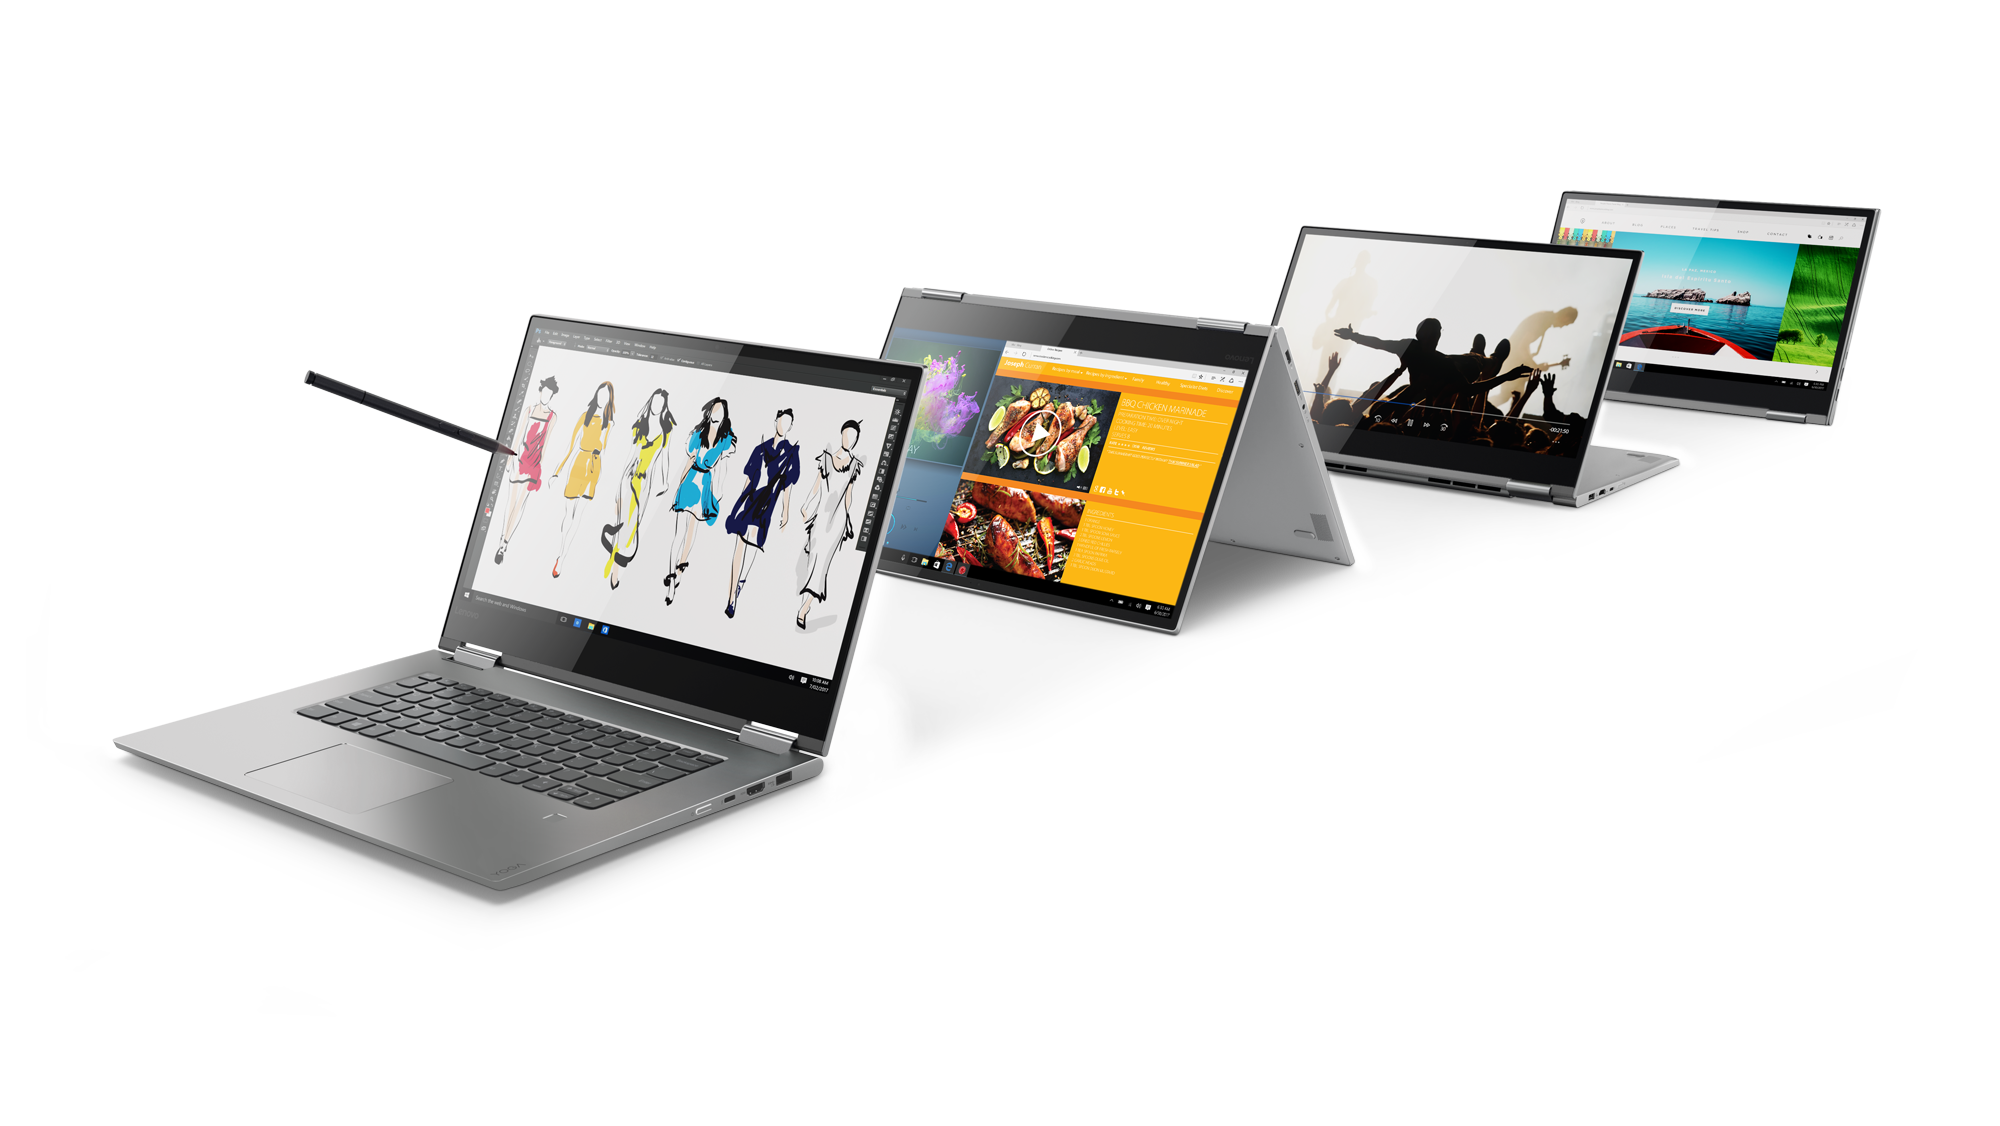 Save $$$ at Lenovo with coupons and deals like: 35% Off Any X or T Series Laptop + Free Shipping ~ Extra 15% Off IdeaPad S Laptops ~ Android Tablet Sale: 10% Off Select Tab 4 and Yoga Tabs ~ 30%% Off All P Series ThinkStation & ThinkPad PCs .